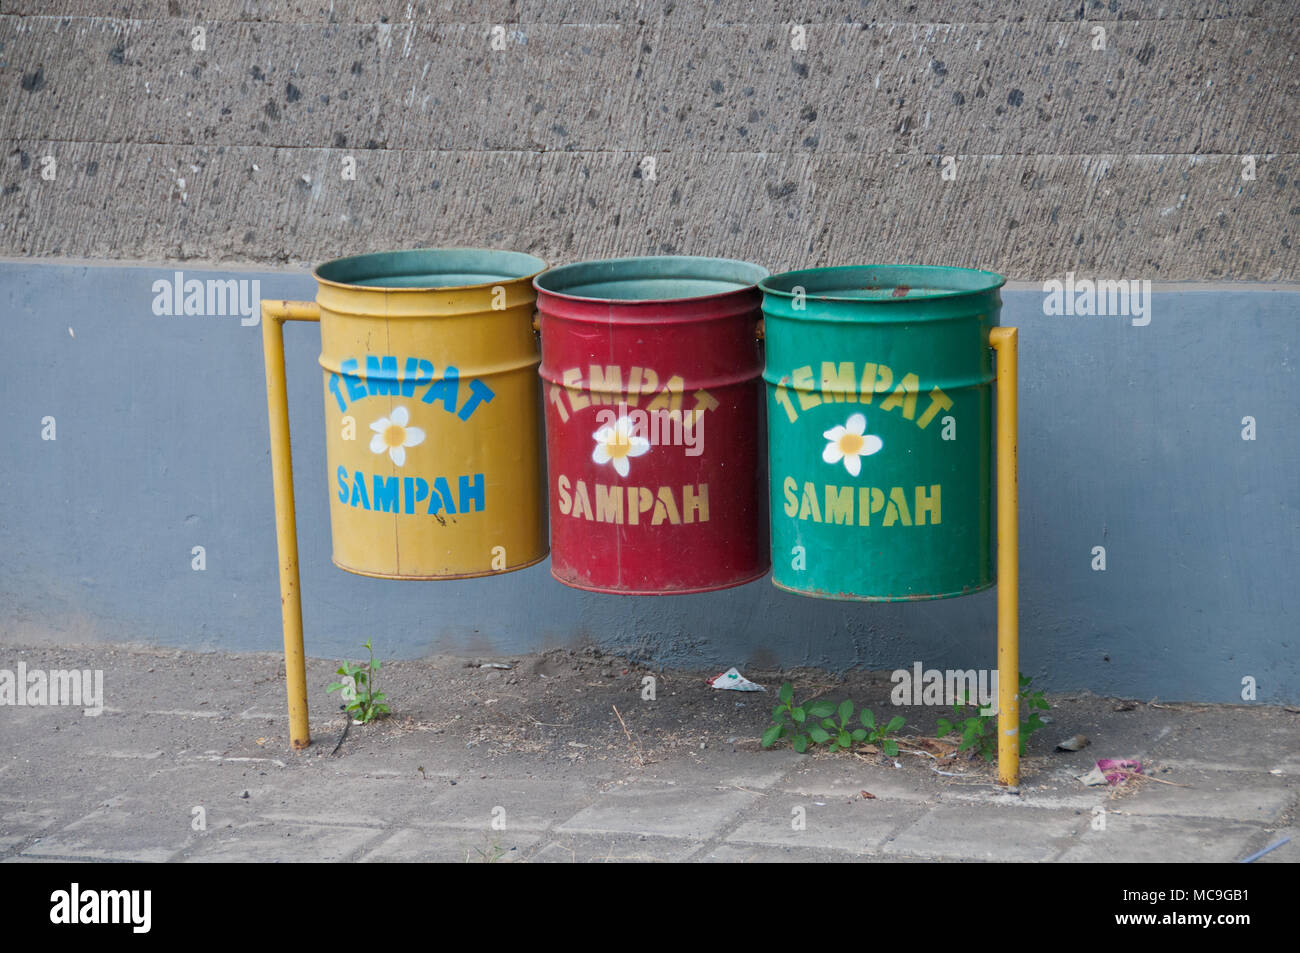 Three recycle bins in Bali. The word Tempat Sampah means Trash Can. - Stock Image